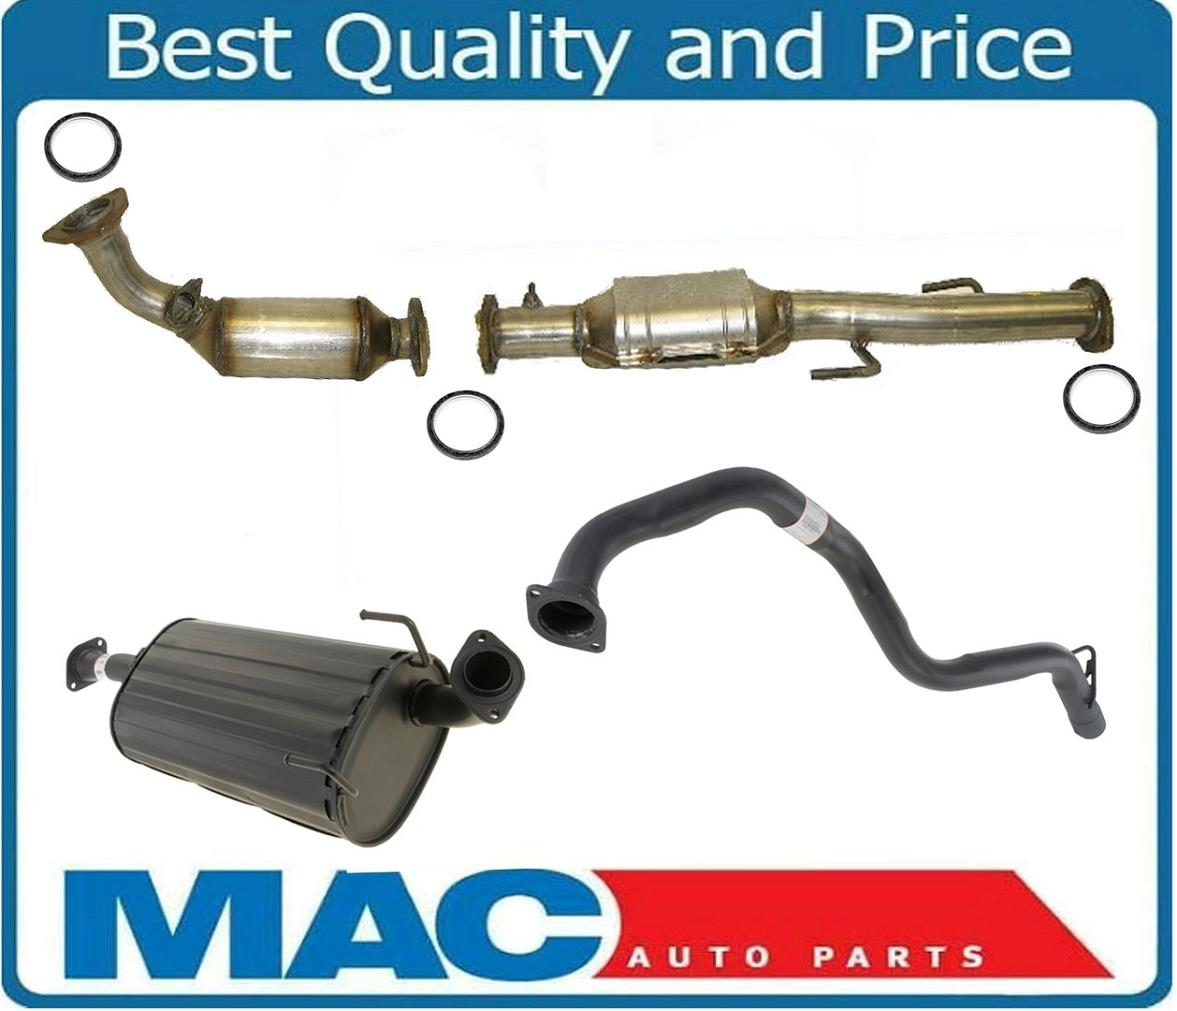 details about made in usa full exhaust system for toyota 3 4l 4 wheel drive 4runner 2001 2002